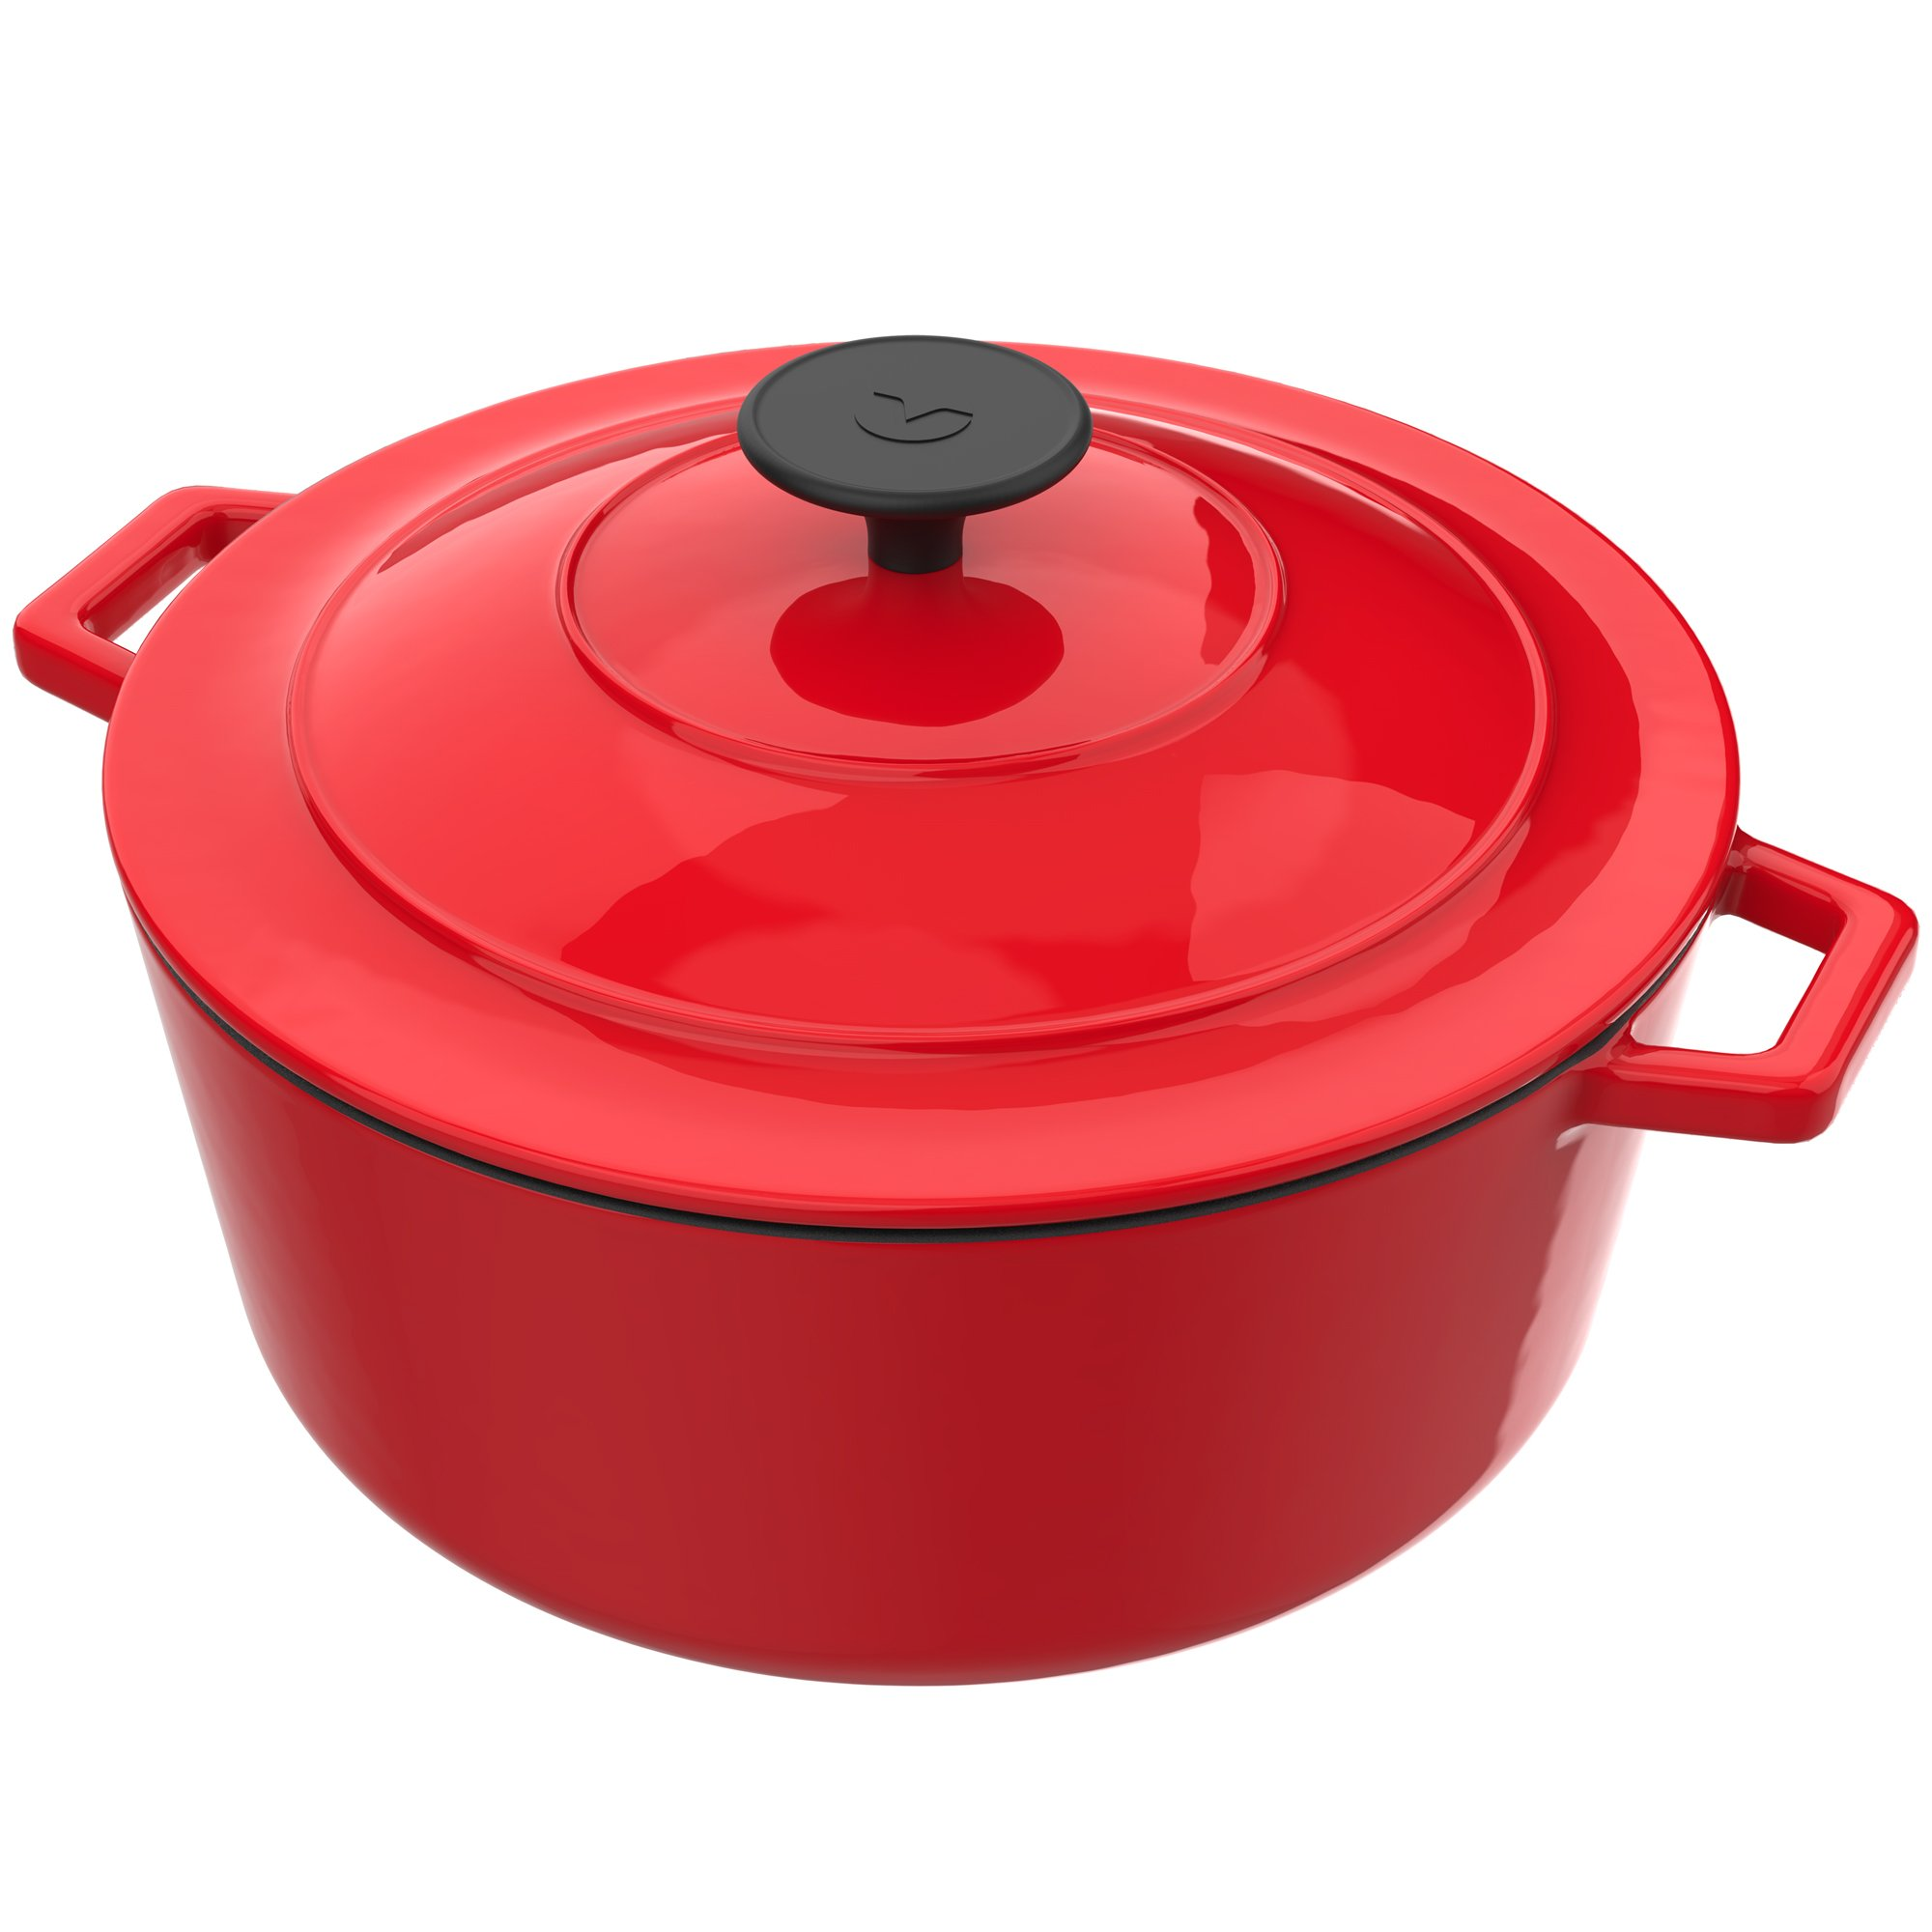 Vremi Enameled Cast Iron Dutch Oven Pot with Lid - 6 Quart Capacity for Preparing Low and Slow Cooking Meals - Electric Gas Stove Top Compatible Cookware - Deep Large - Red